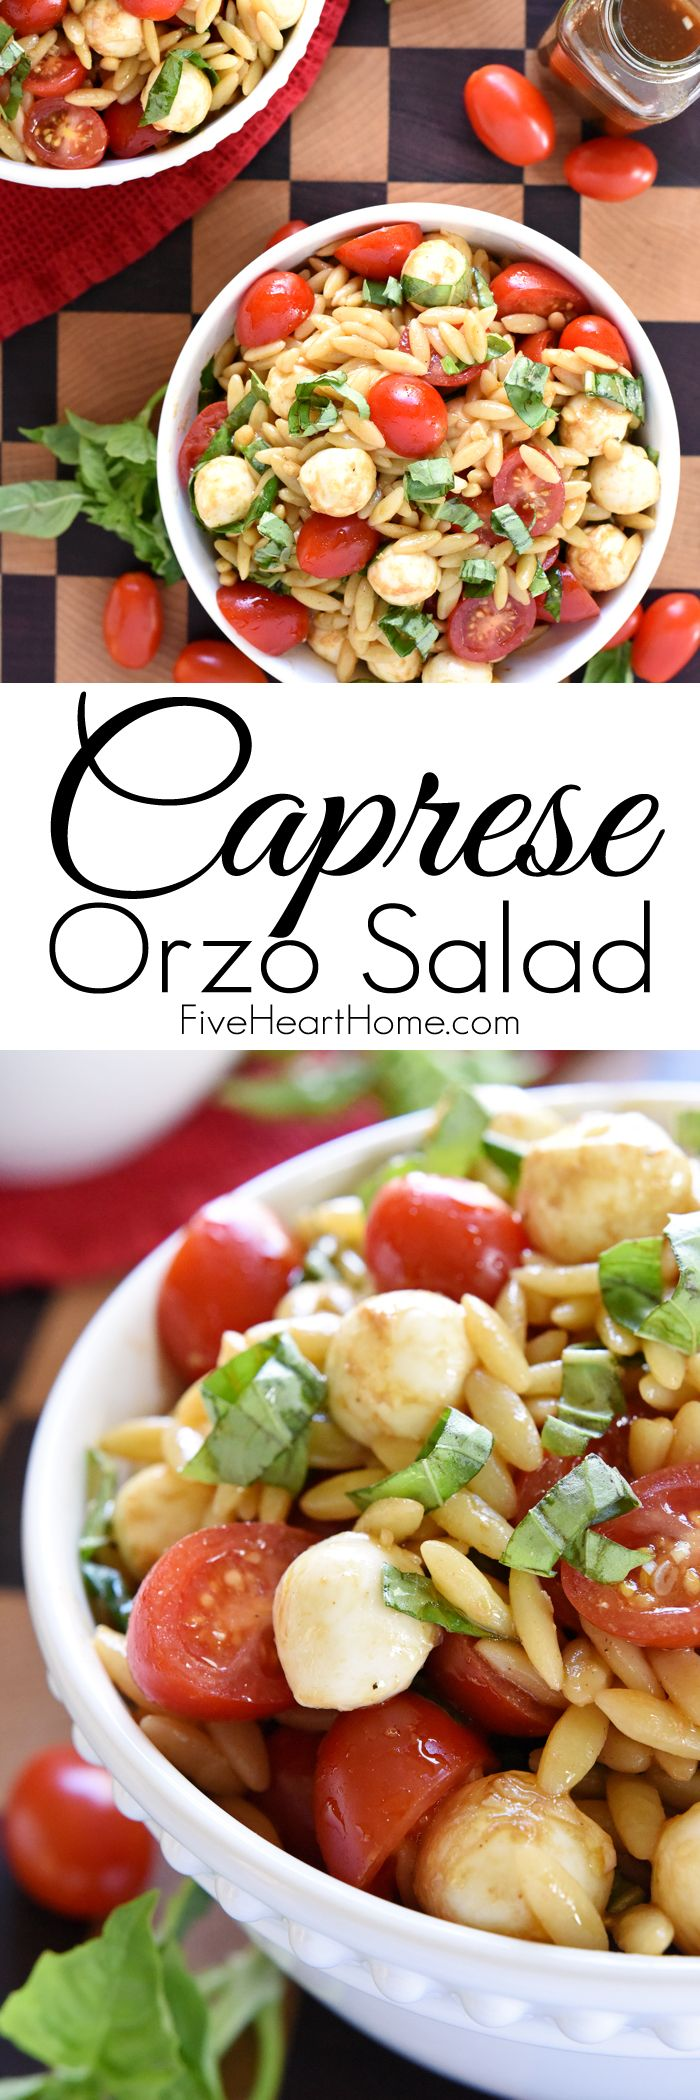 nike shox r5 womens health Caprese Orzo Salad | Recipe | Orzo Salad, Summer Pasta Salad and Orzo